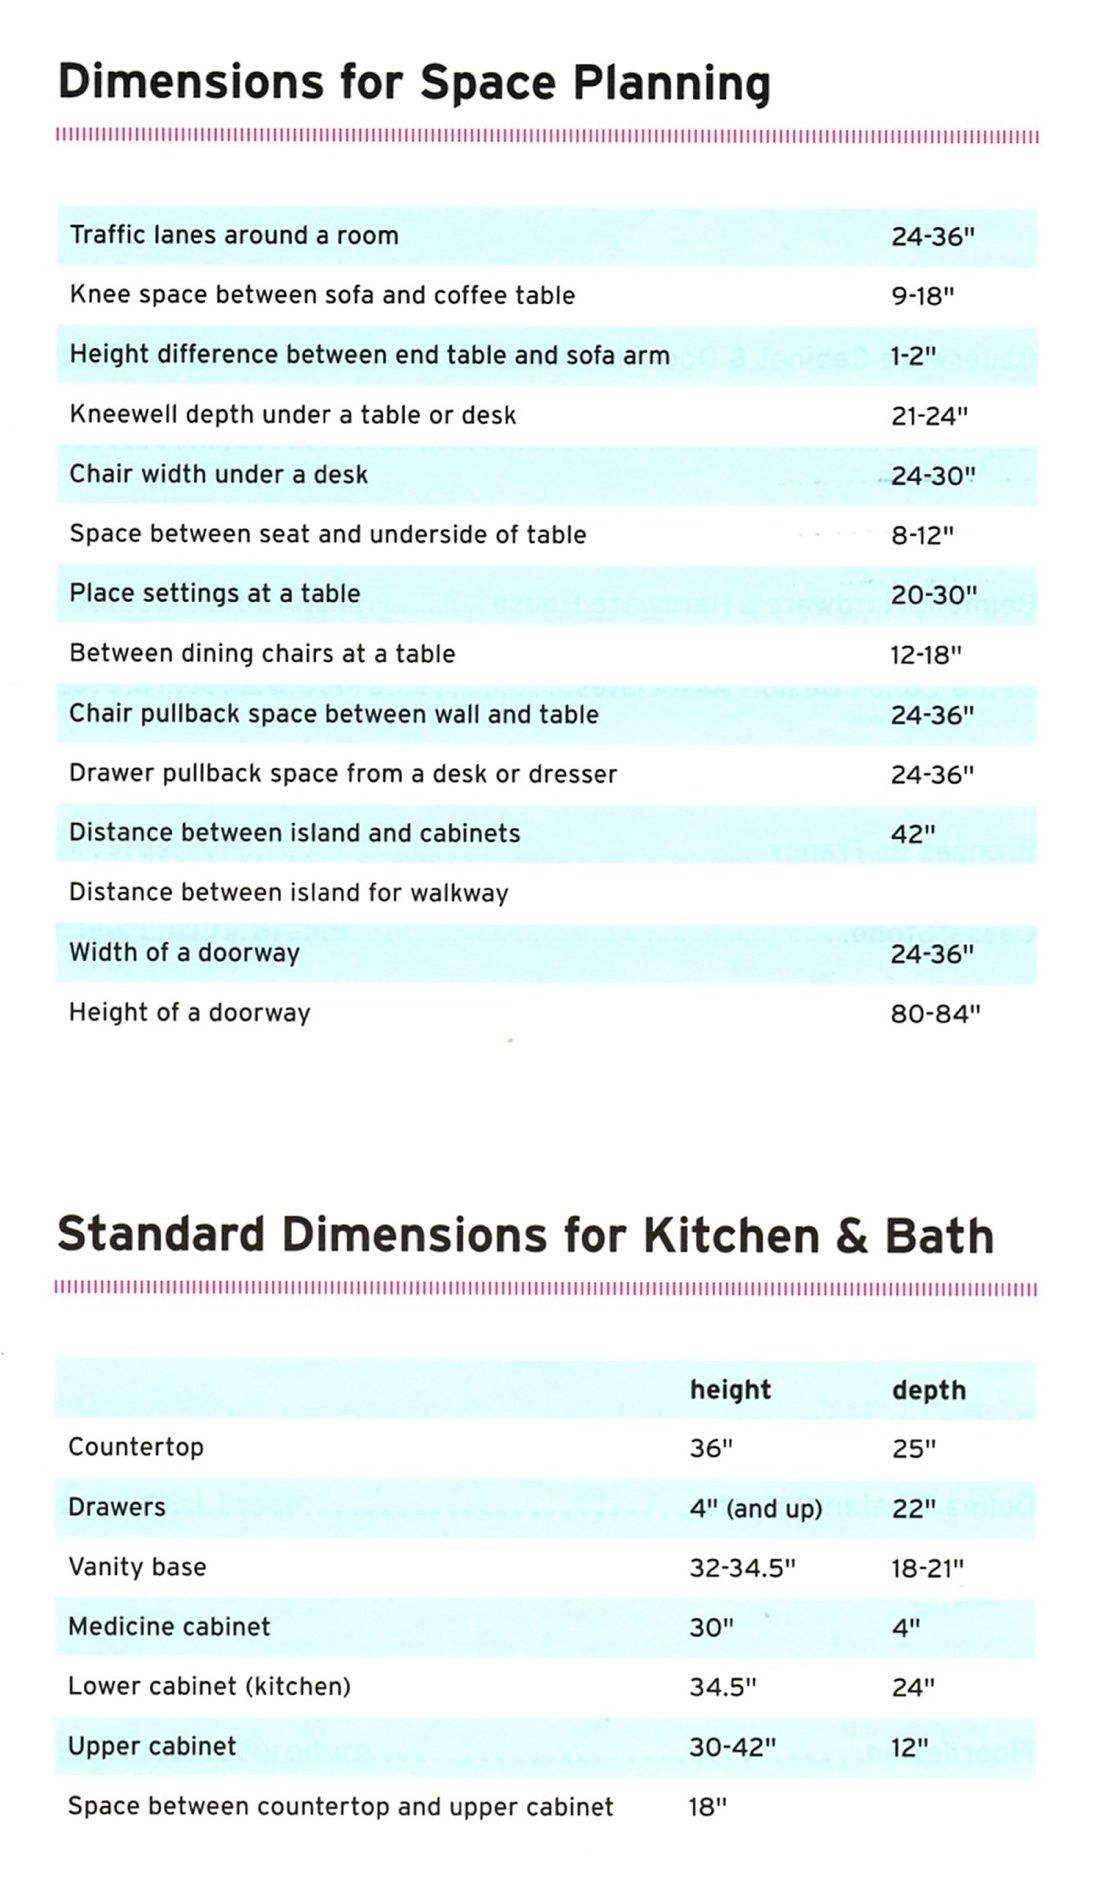 Standard dimensions for space planning interior decorating